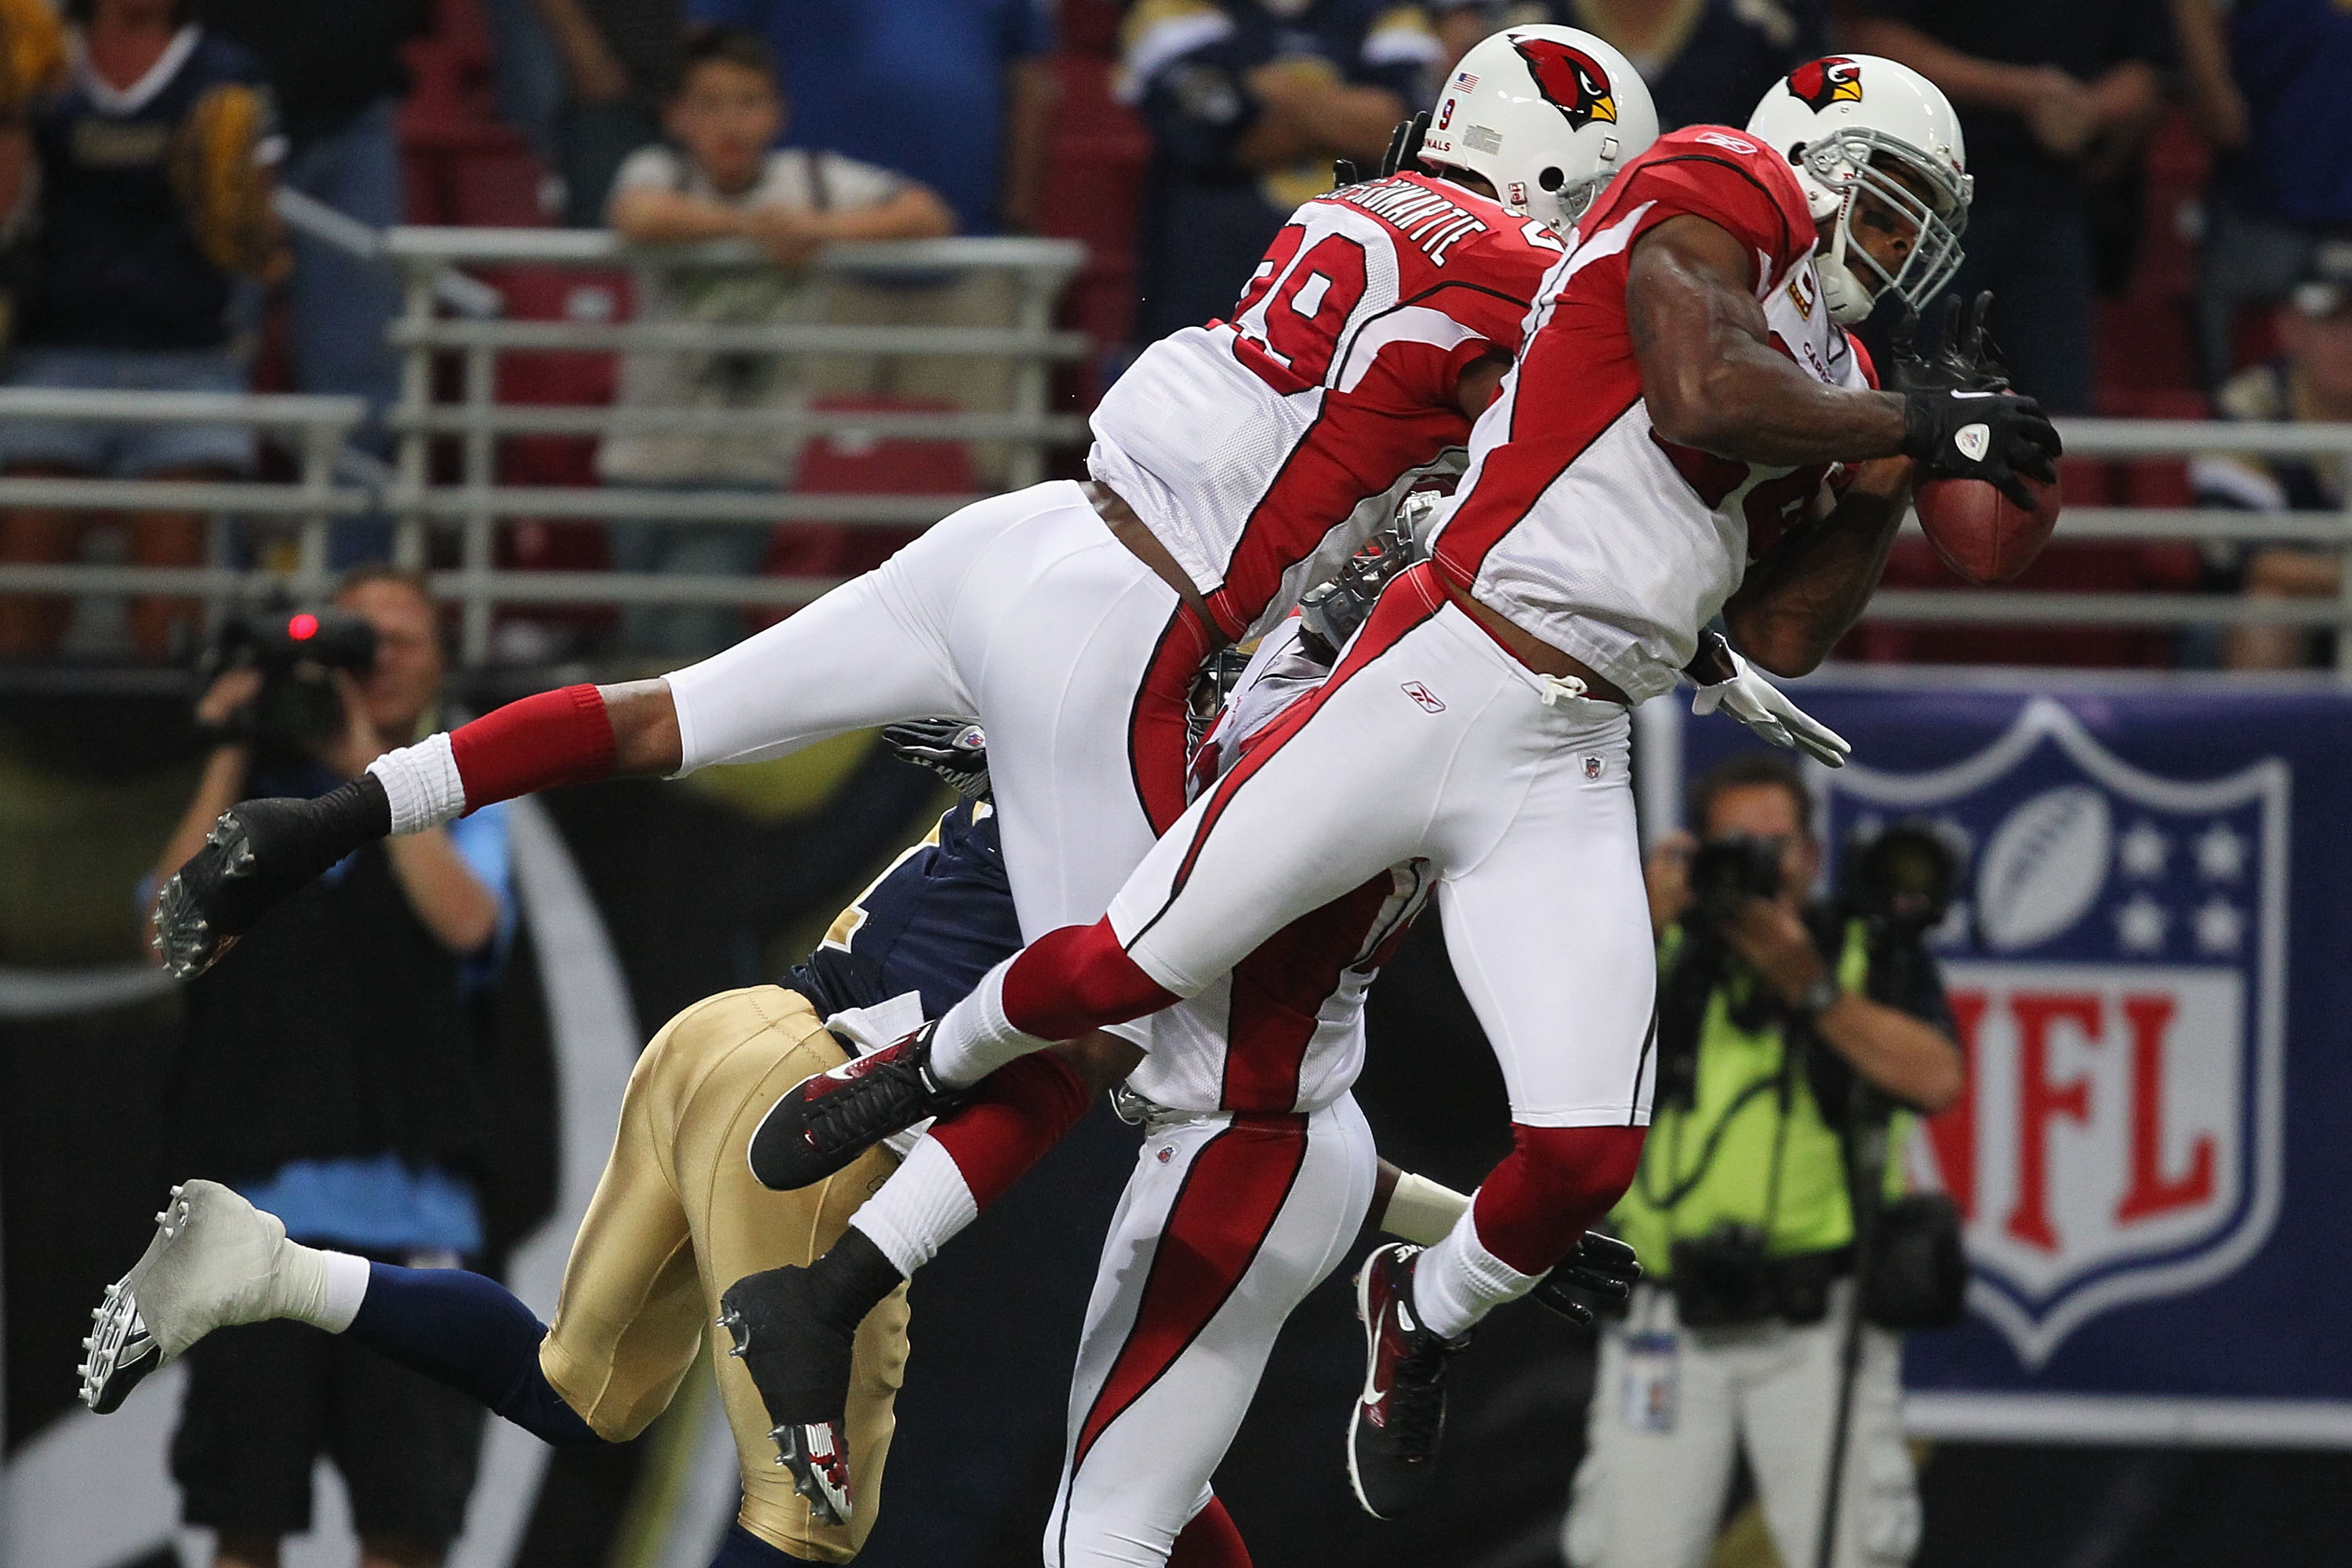 ST. LOUIS - SEPTEMBER 12: Adrian Wilson #24 of the Arizona Cardinals knocks down the final pass of the game against the St. Louis Rams during the NFL season opener at the Edward Jones Dome on September 12, 2010 in St. Louis, Missouri.  The Cardinals beat